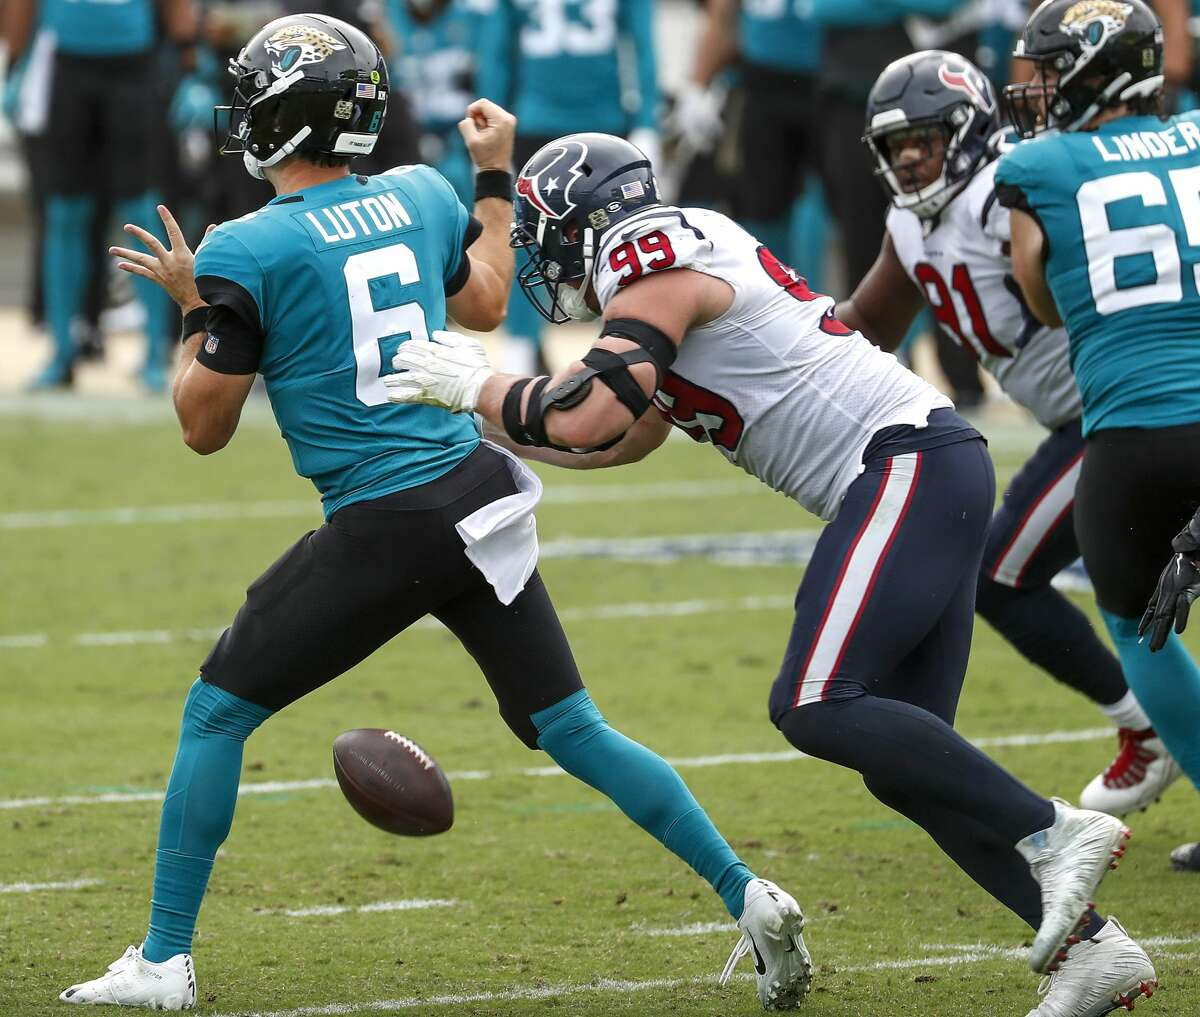 Houston Texans defensive end J.J. Watt (99) strips the ball away from Jacksonville Jaguars quarterback Jake Luton (6) as he sacks the quarterback during the second half of an NFL football game at TIAA Bank Field Sunday, Nov. 8, 2020, in Jacksonville. The sack was Watt's 100th career sack.